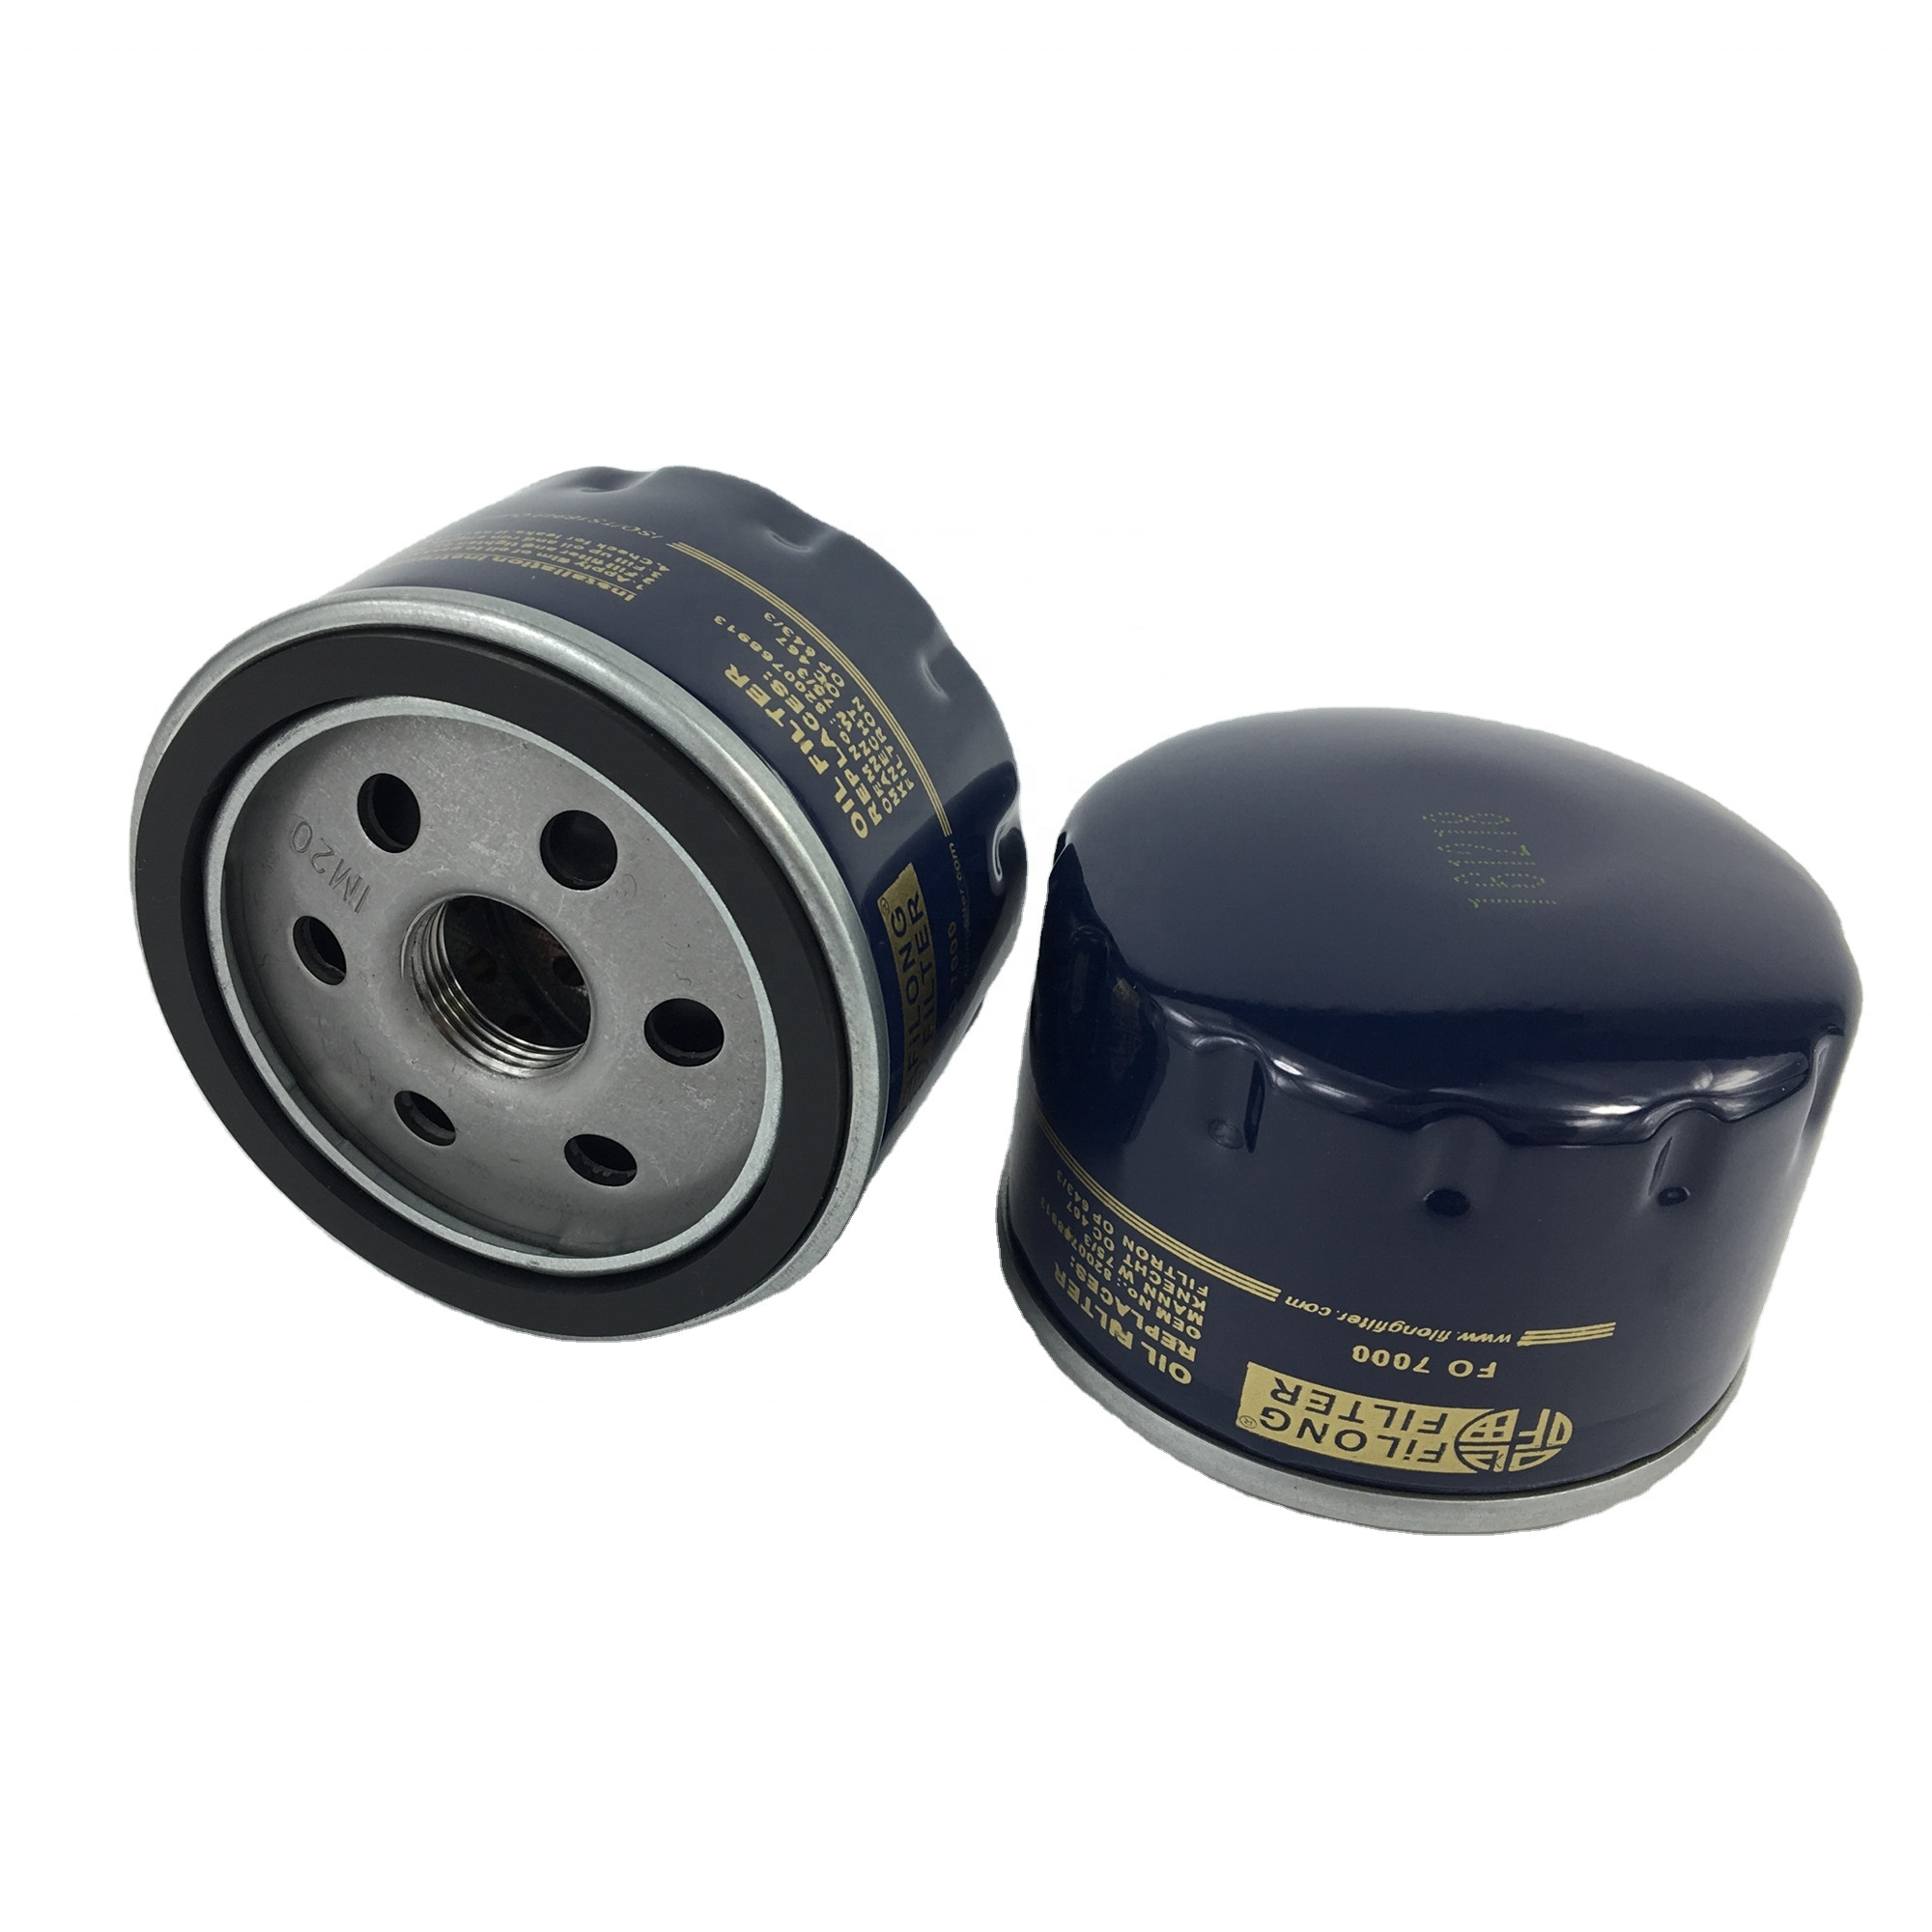 FILONG Automotive filters Manufacturers in China,,FILONG Automotive filters  Factory In China,FILONG Automobile filters  Suppliers In China,